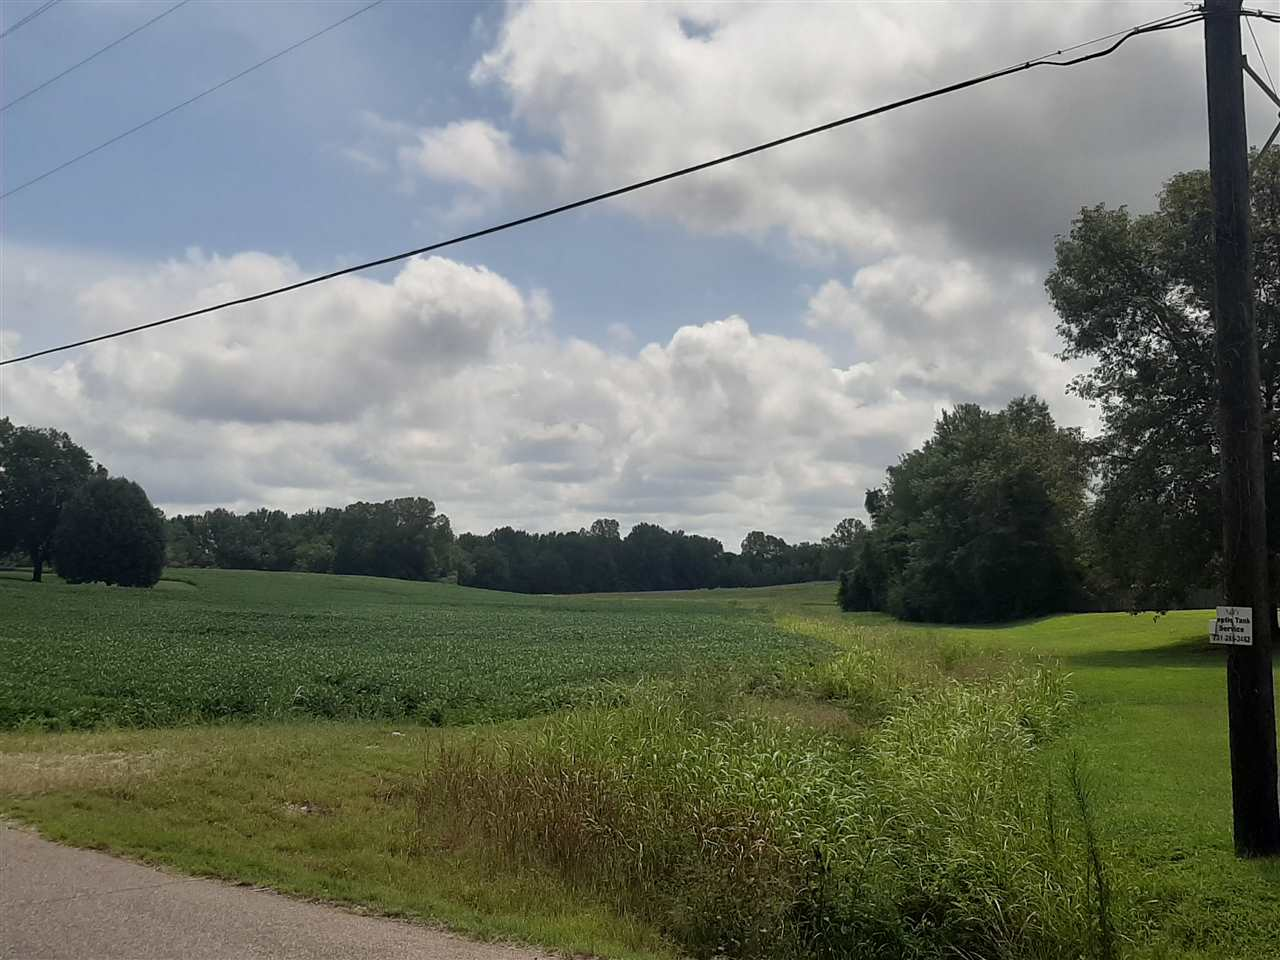 00 Hurricane Hill, Dyersburg, Tennessee 38024-0000, ,Lots/land,For Sale,00 Hurricane Hill,203285